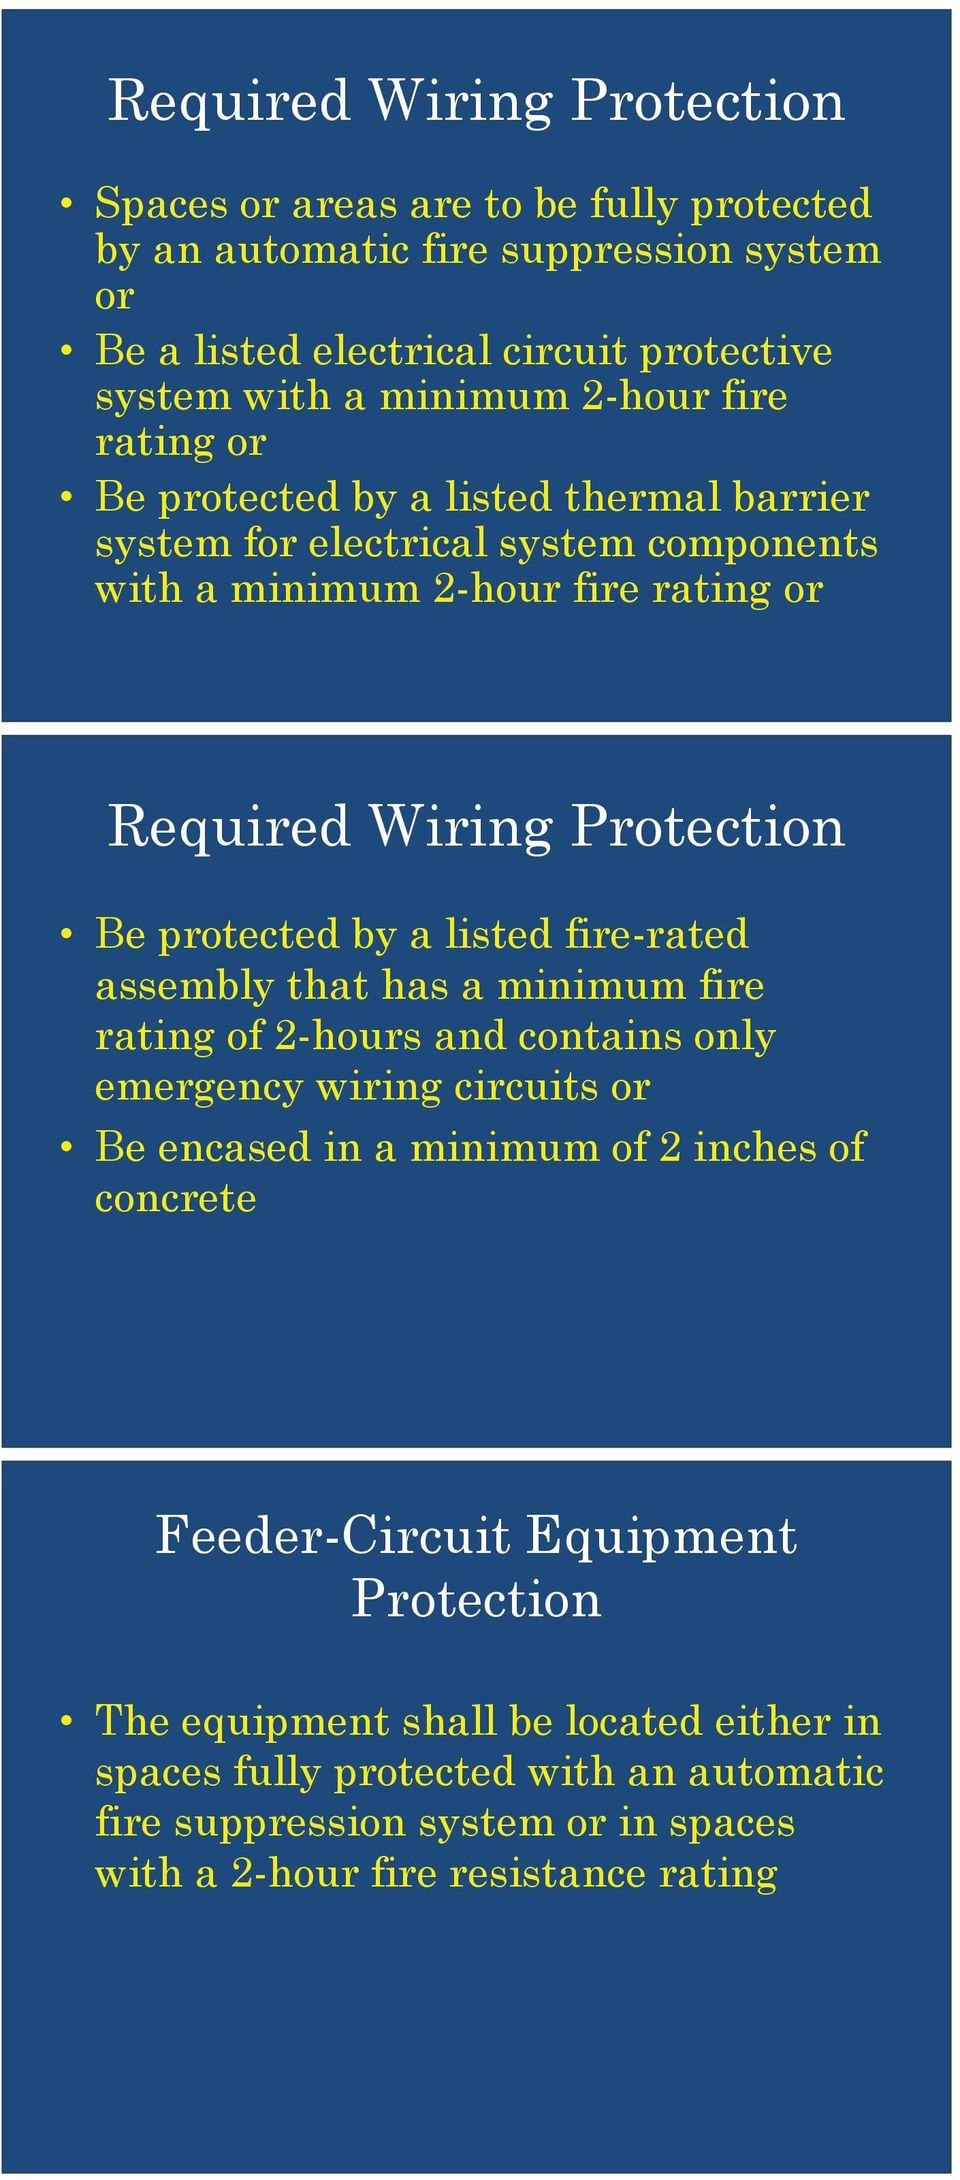 protected by a listed fire-rated assembly that has a minimum fire rating of 2-hours and contains only emergency wiring circuits or Be encased in a minimum of 2 inches of concrete